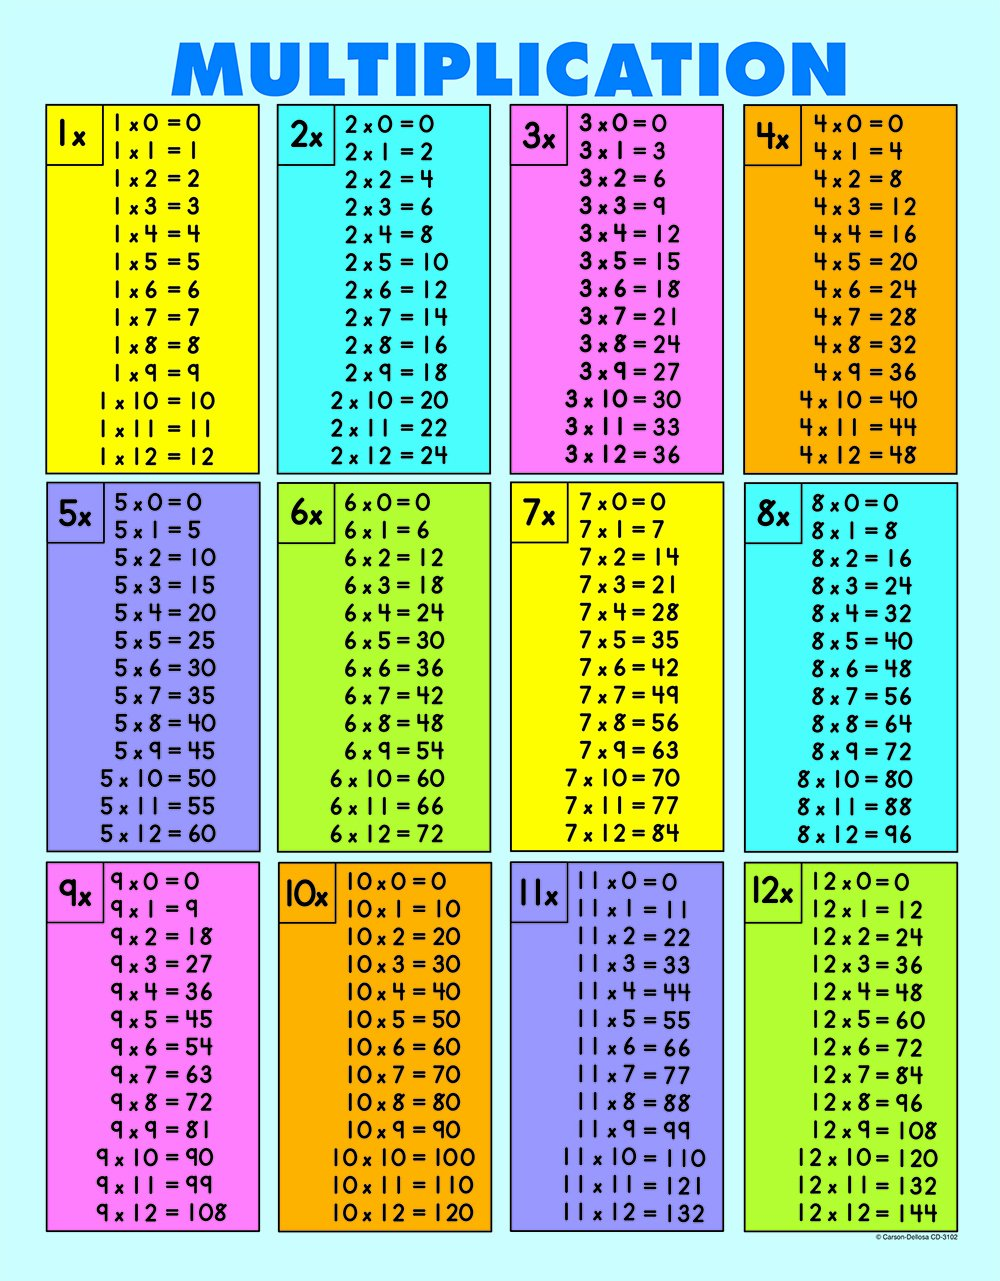 Multiplication facts through 12 popflyboys for Table 9 multiplication